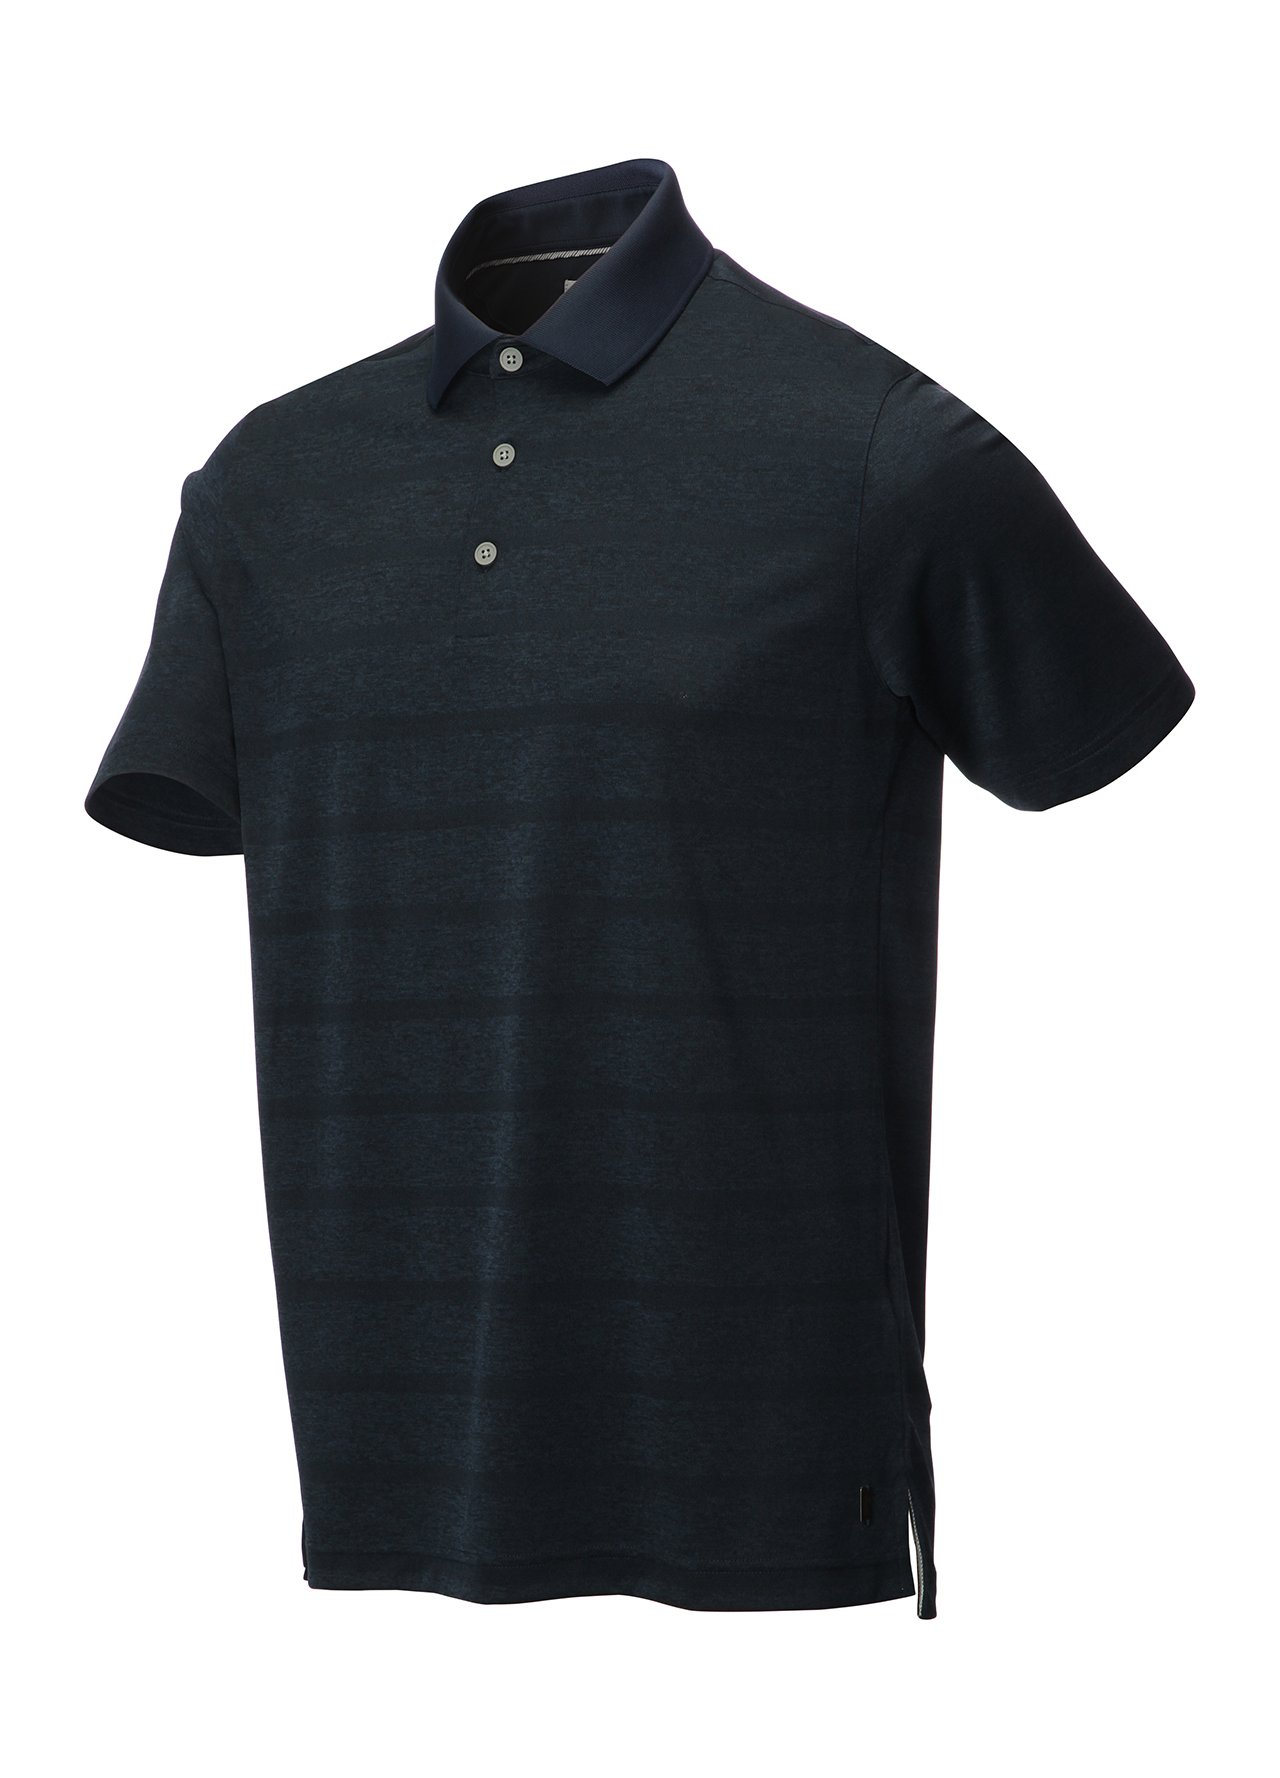 Ashworth golf polo shirt navy medium ebay